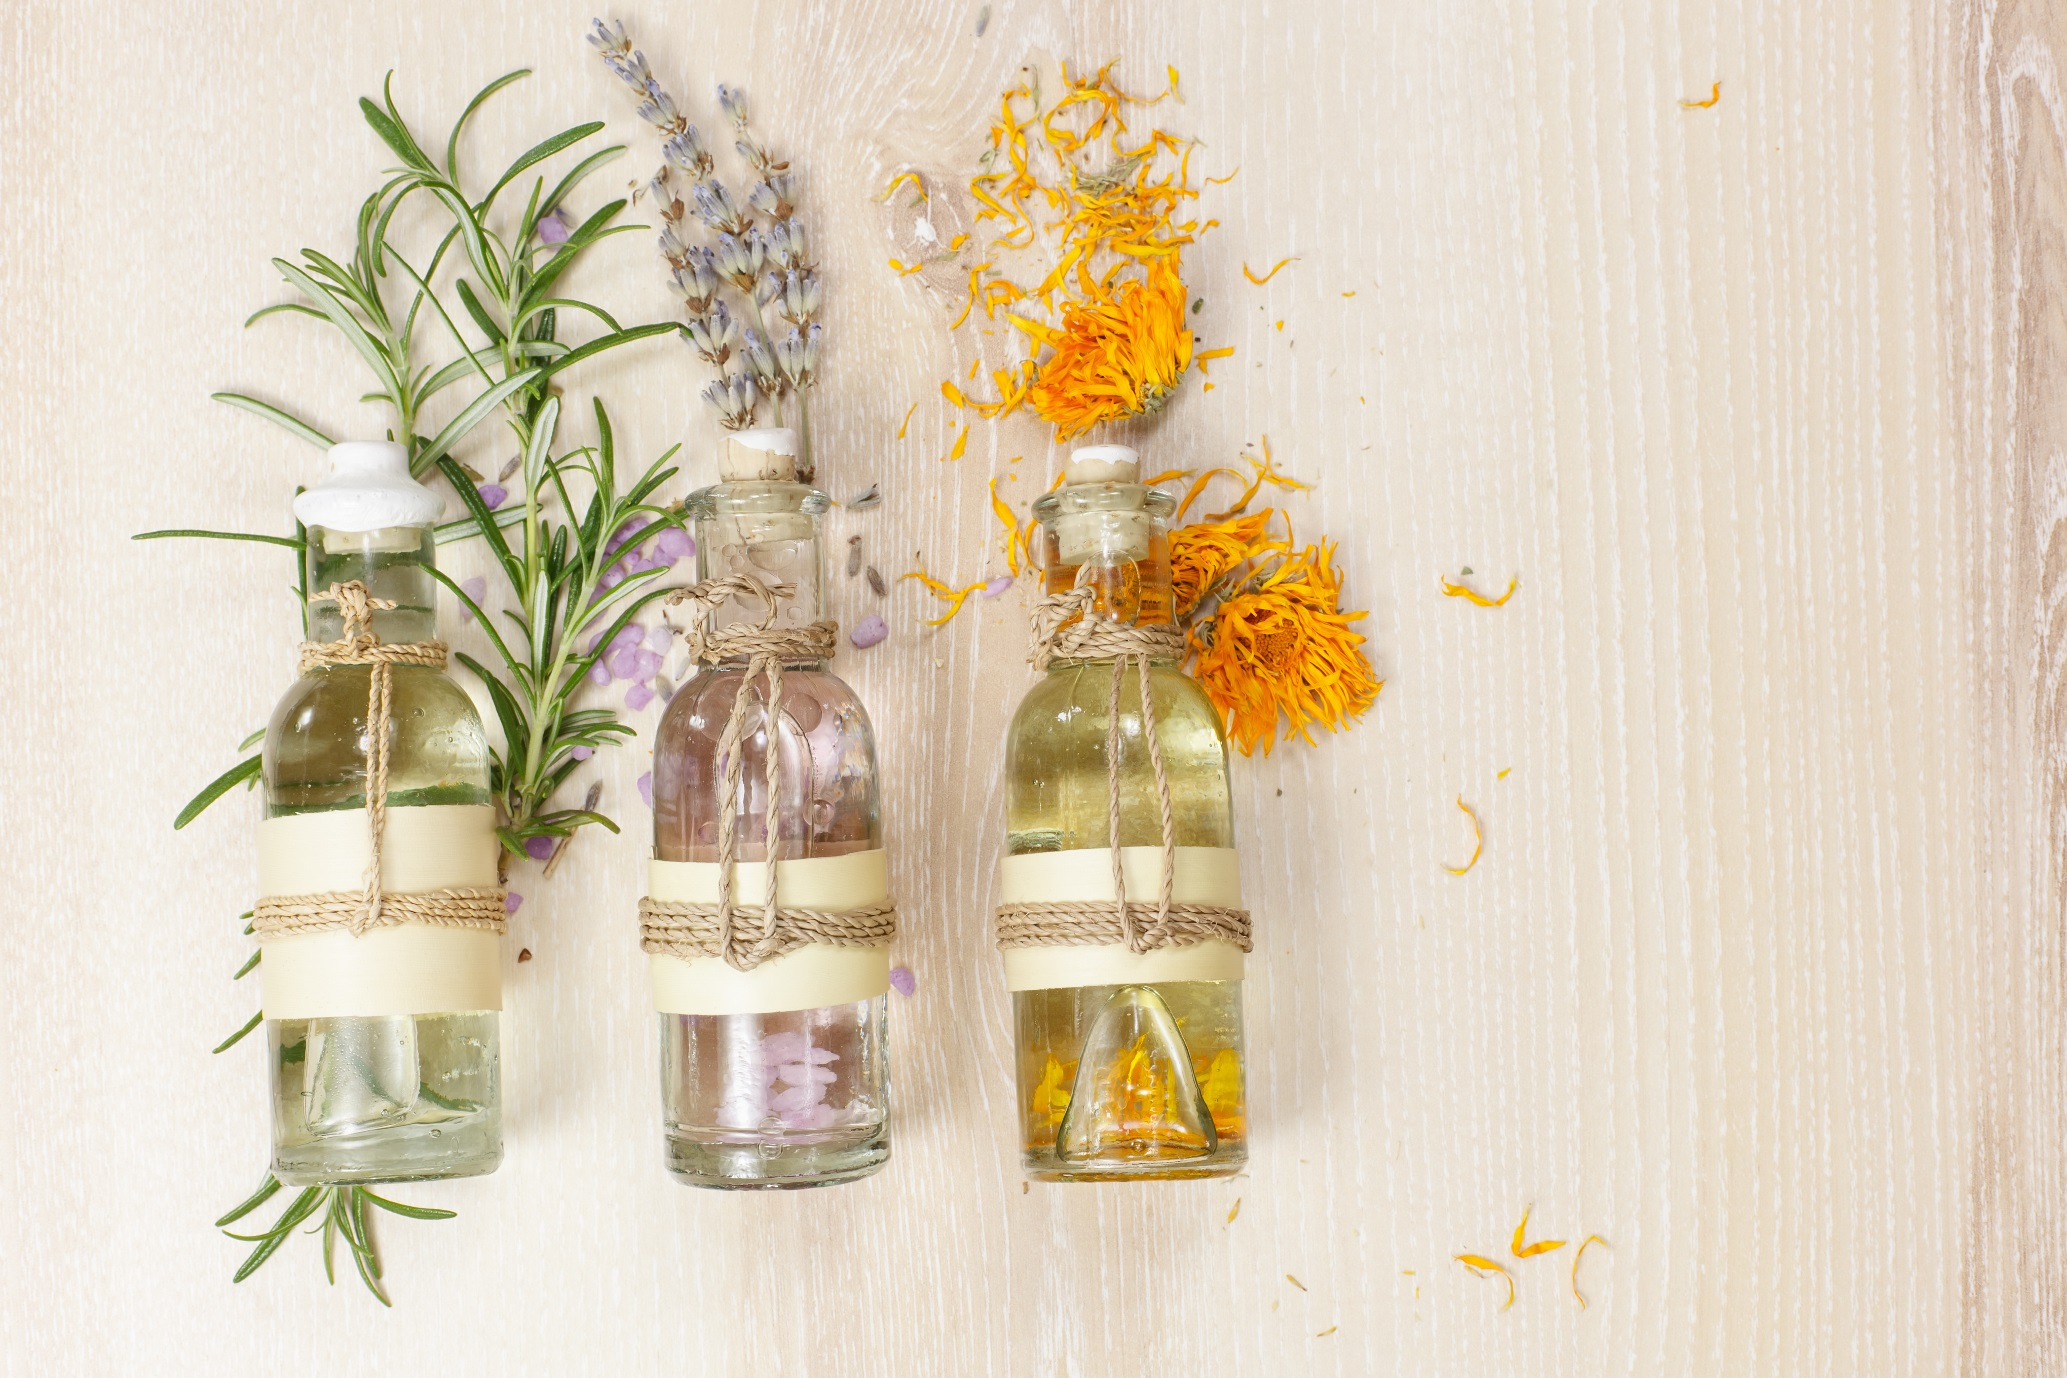 3 essential oils and plants